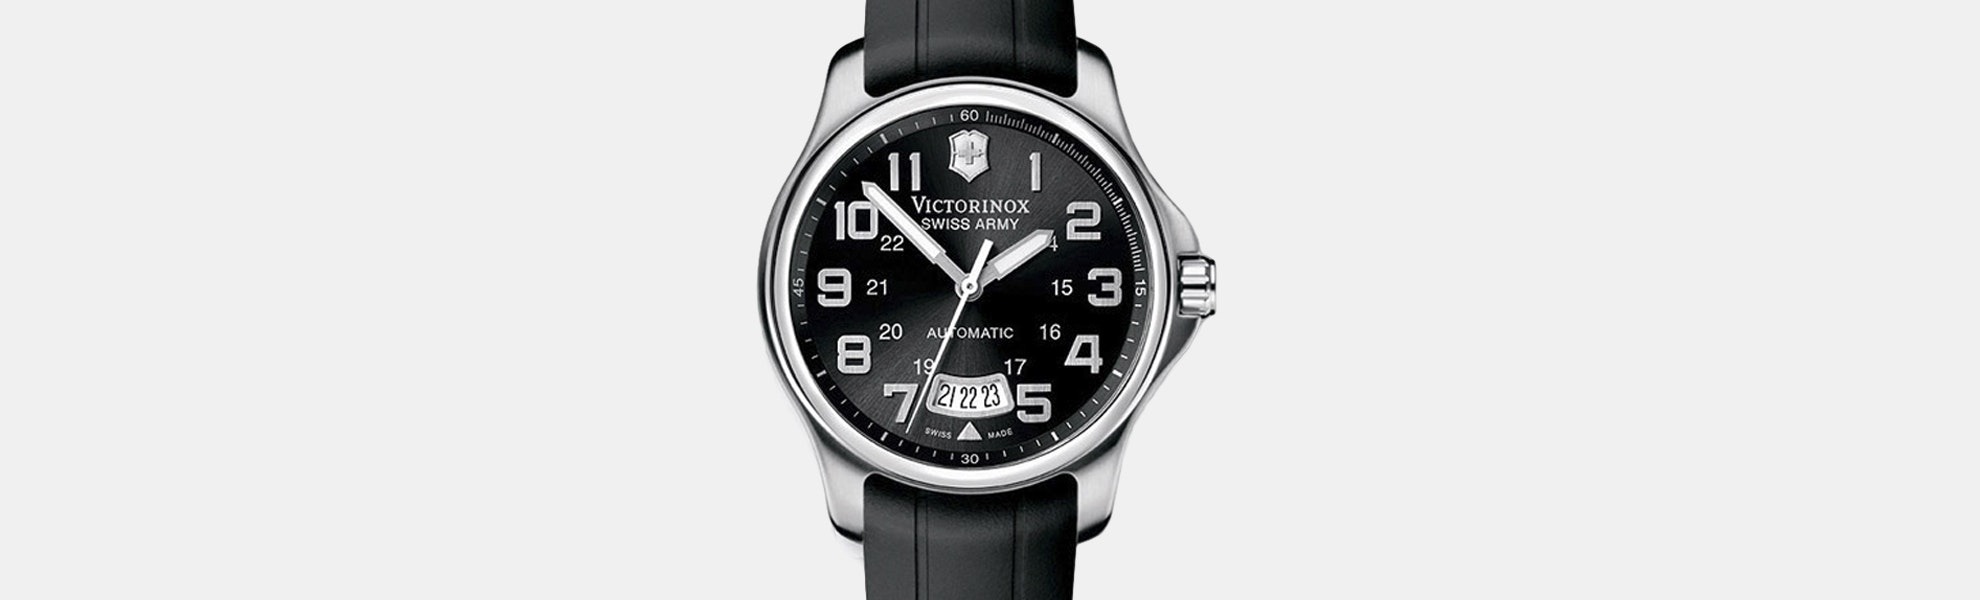 Victorinox Classic Officer's Automatic Watch